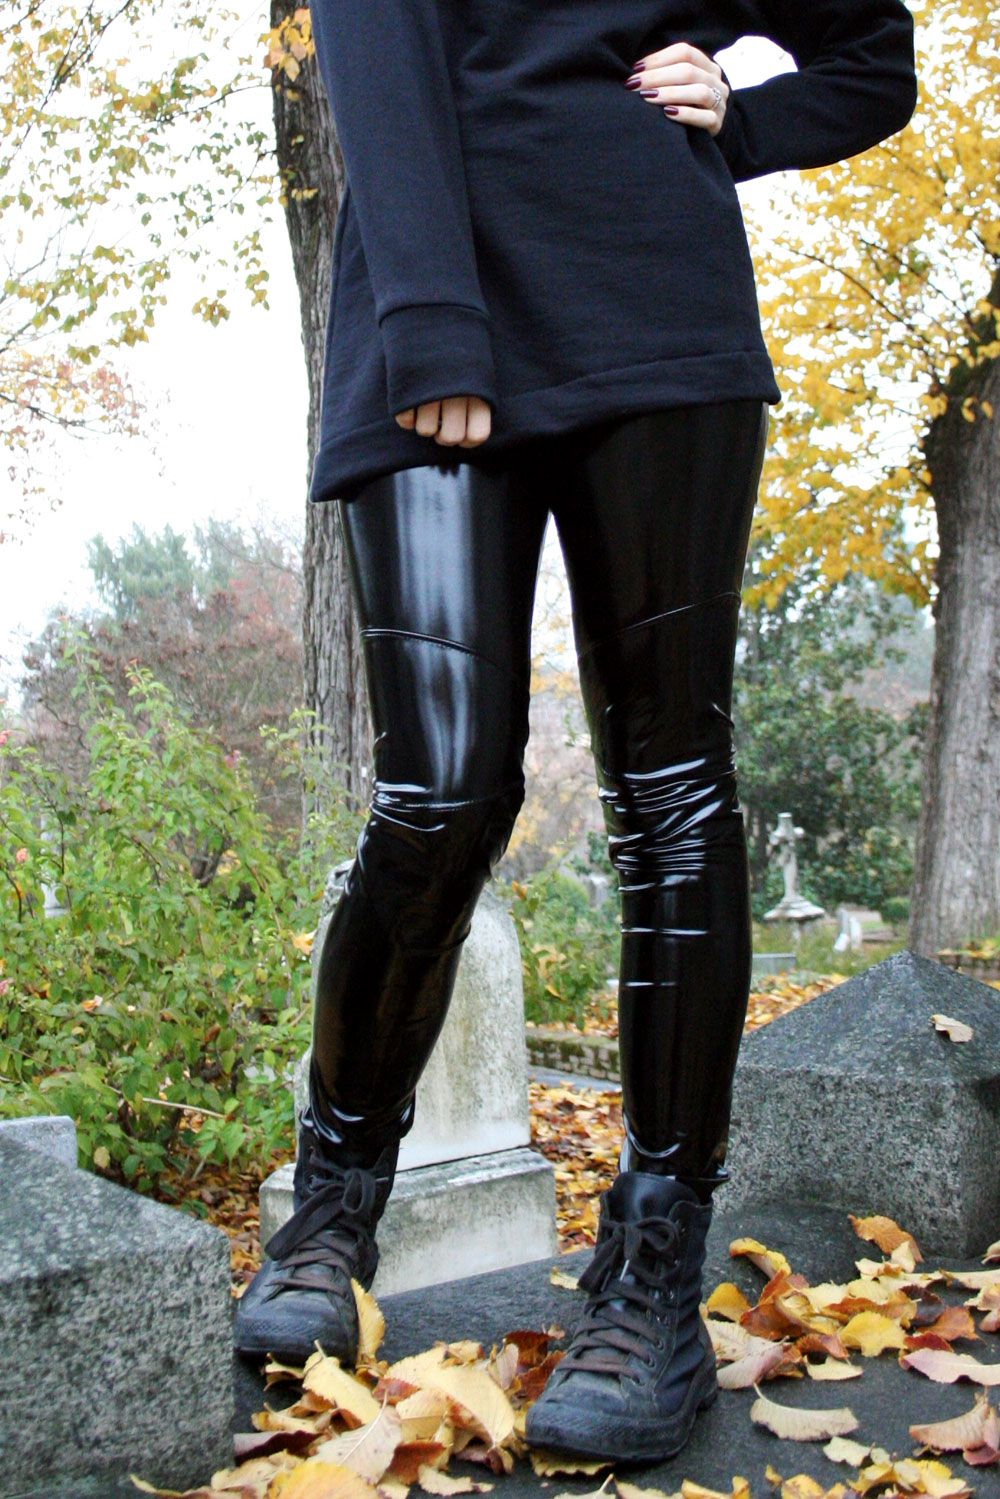 f1363ba7368 Black Stretch Vinyl Leggings handmade by Deranged Designs in size XS to  3XL. Plus size goth gothic clothing stretch pants vinyl spandex latex-look